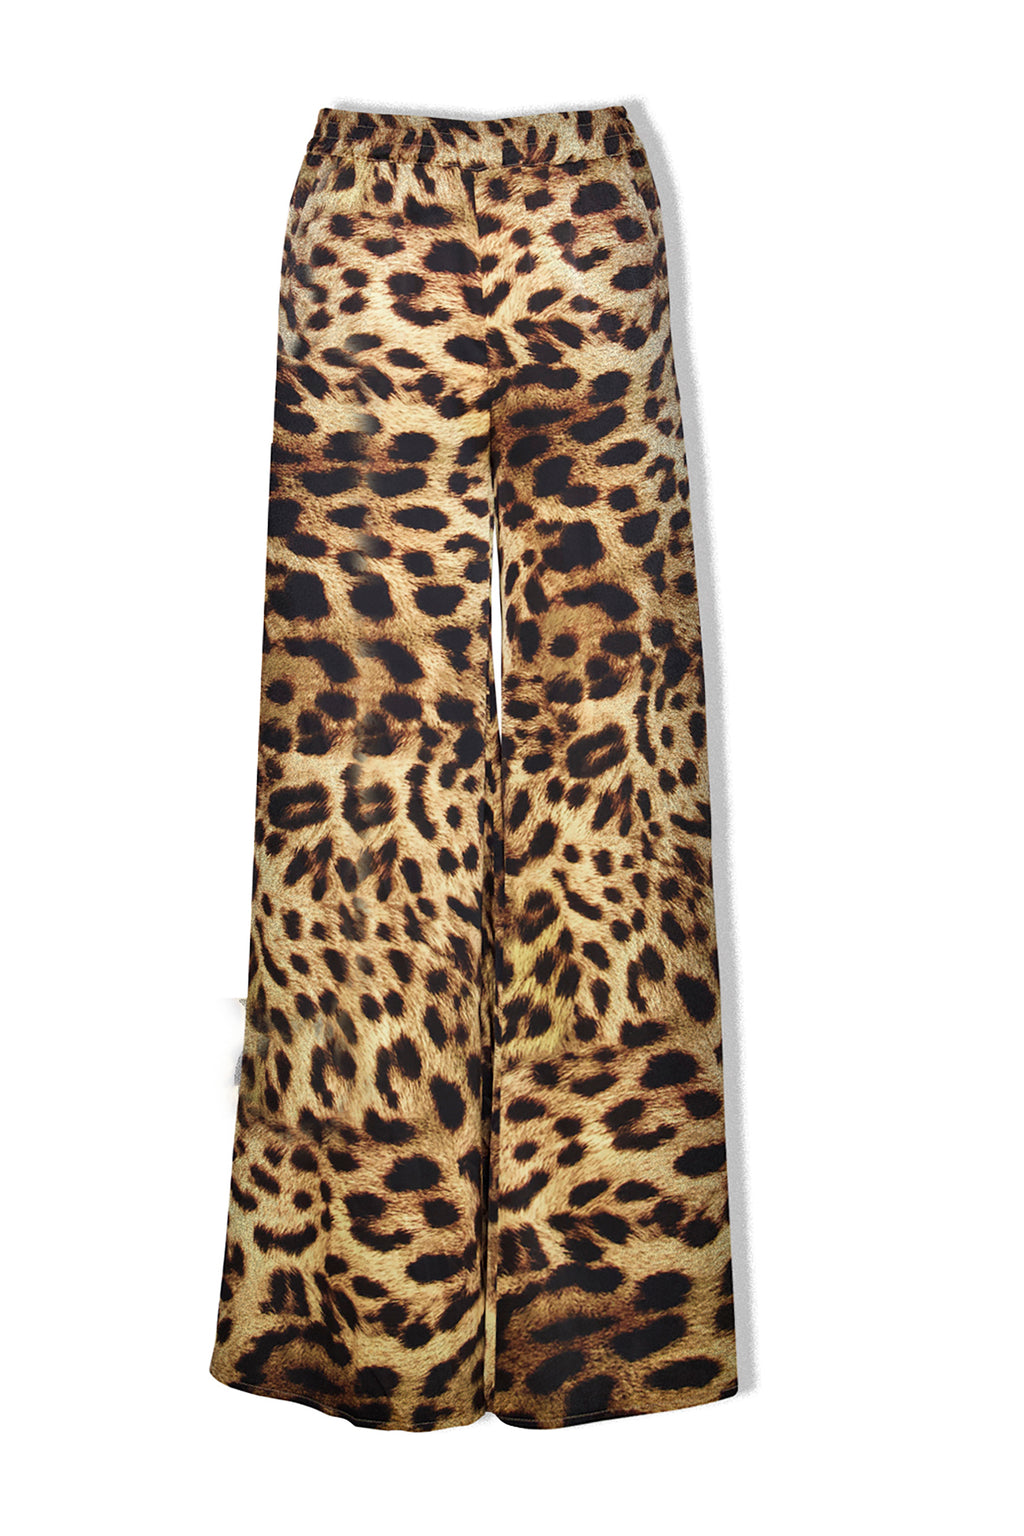 Ilona Rich Leopard Print Wide Leg Trousers